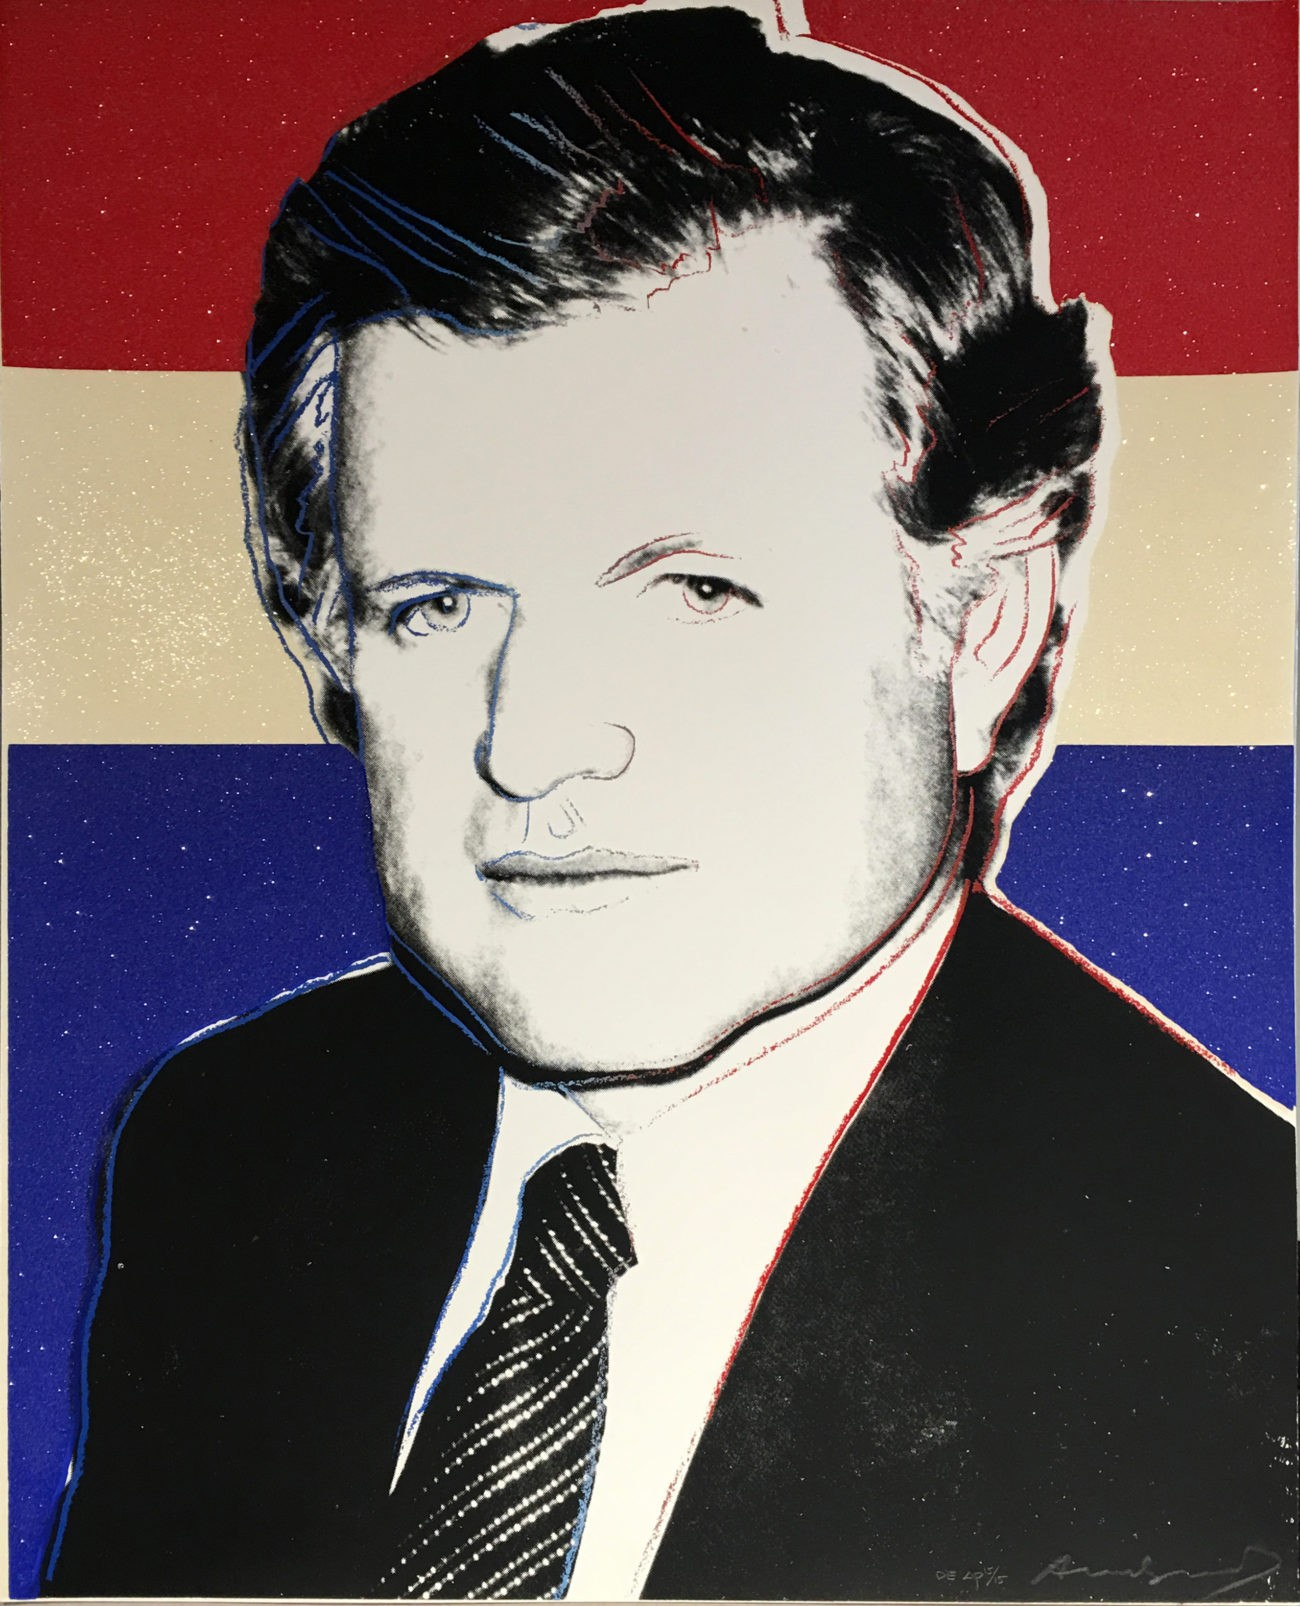 Andy Warhol | Edward Kennedy 241 | Deluxe Edition | 1980 | Image of Artists' work.